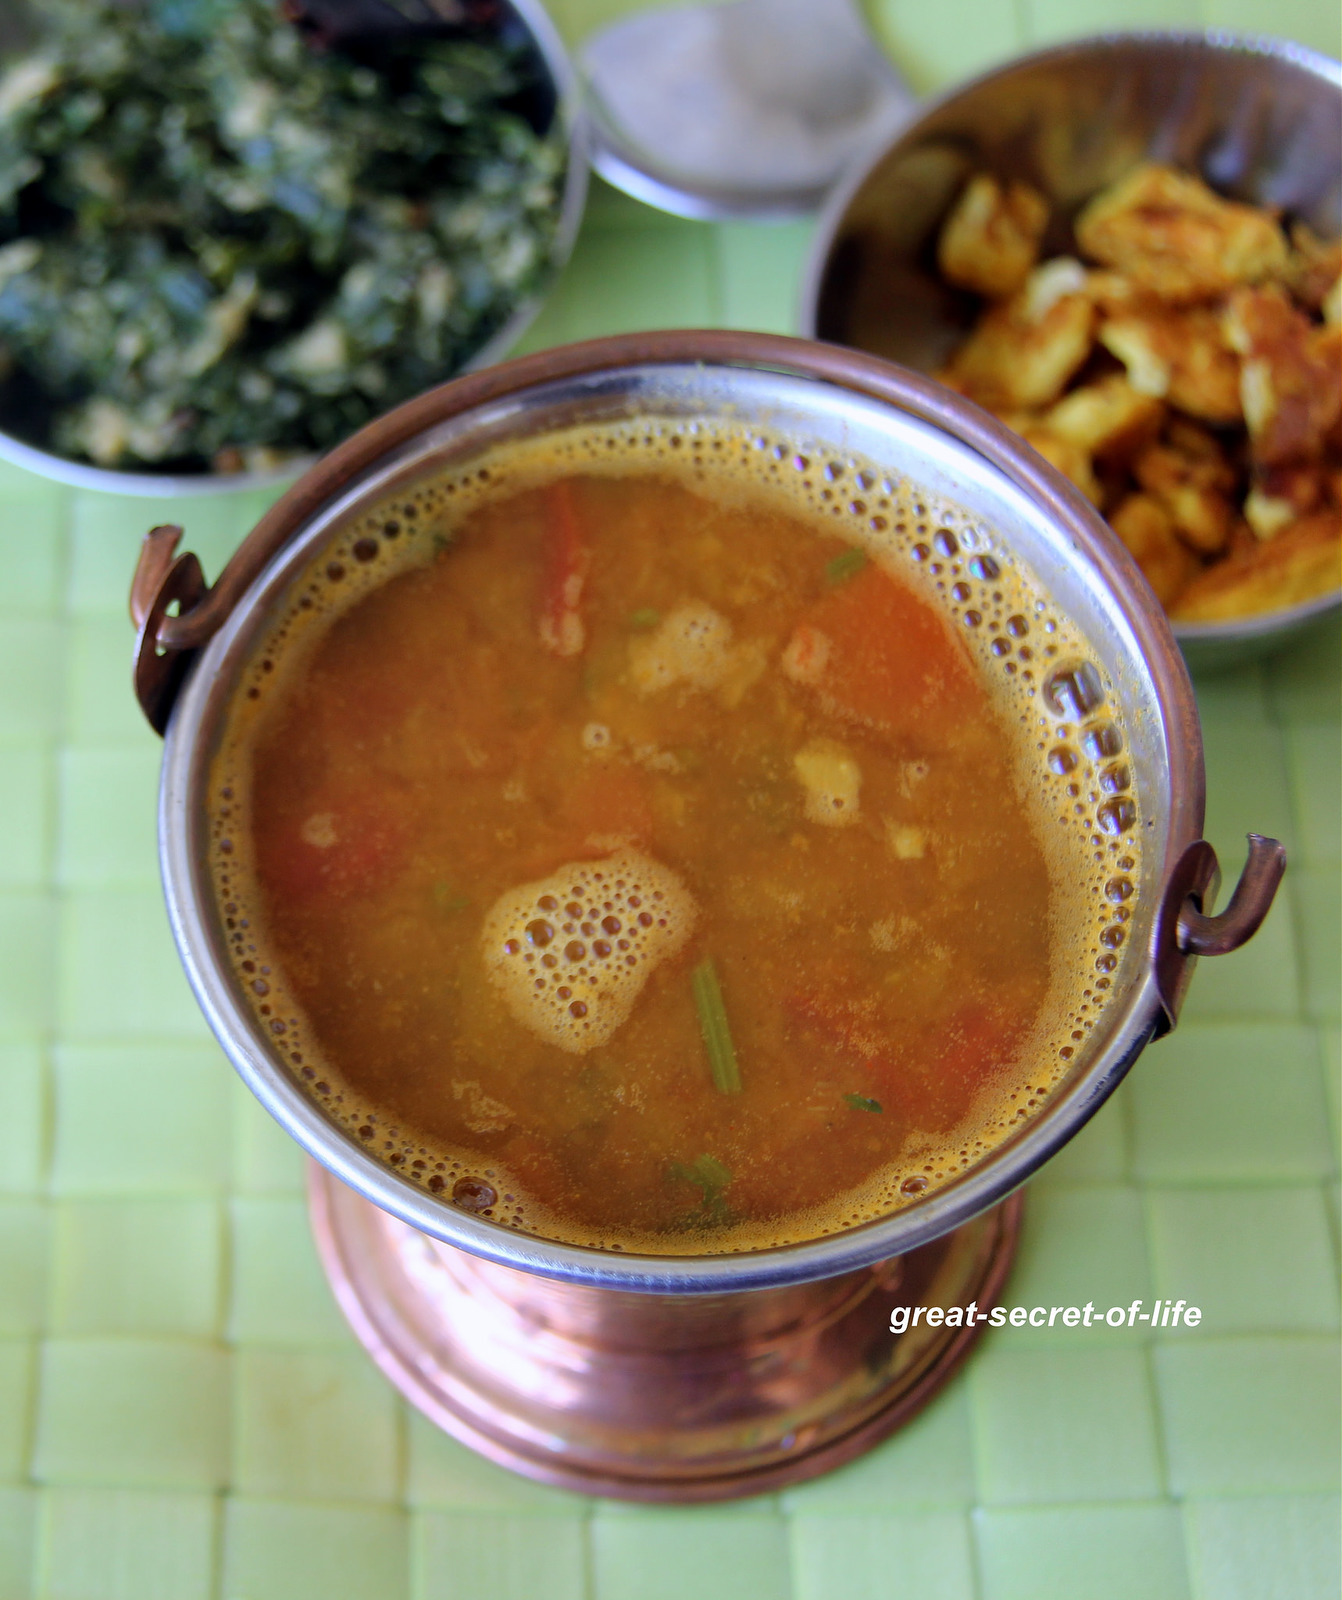 kalyana rasam - iyengar kalyana rasam - Iyengar Rasam - No Tamarind recipe - No onion and garlic recipe